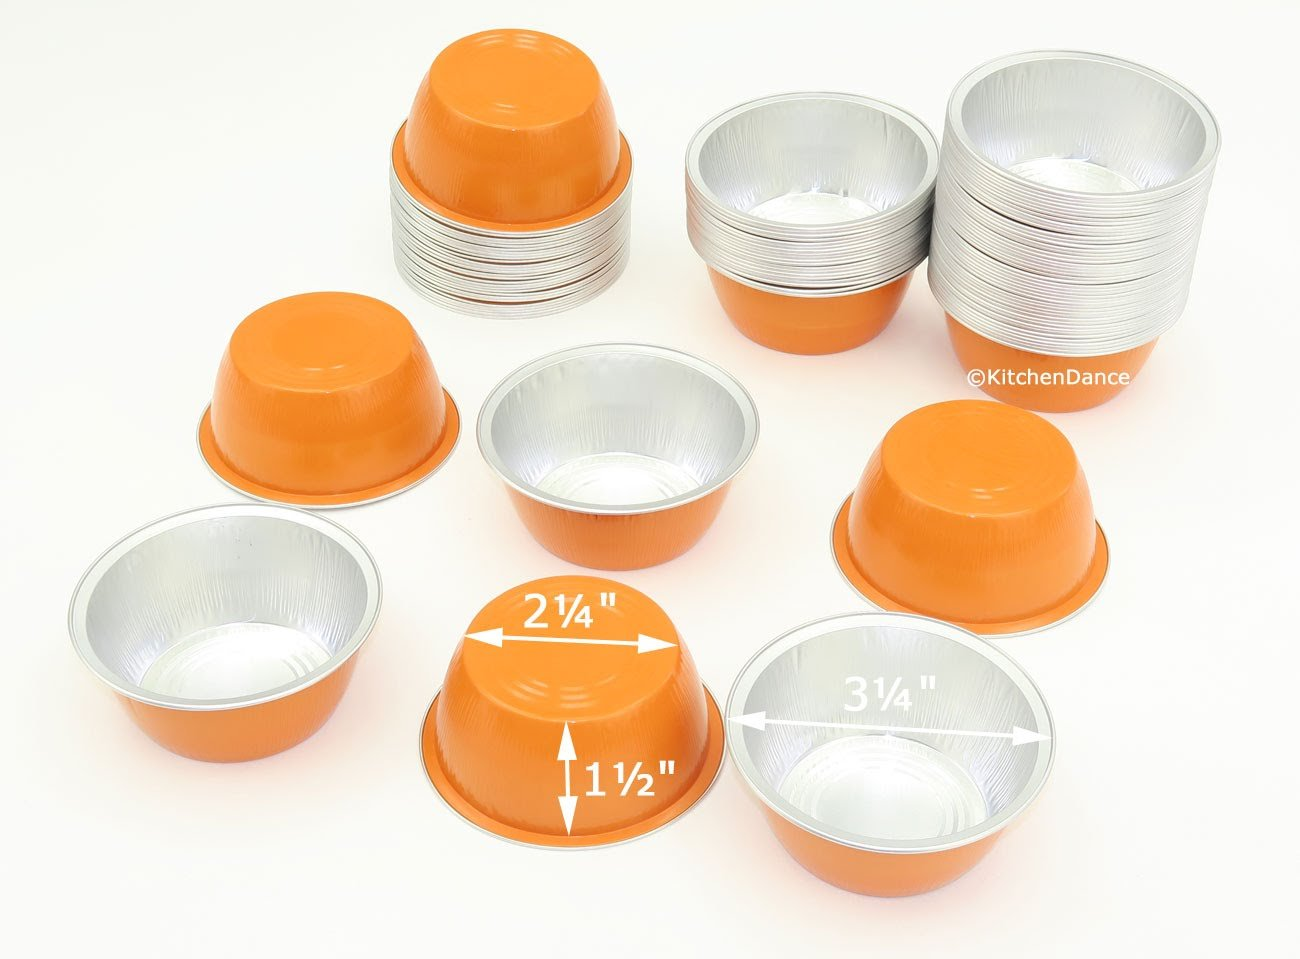 KitchenDance Disposable Aluminum Colored Baking Cups- Creme Brulee- Desserts- 4 oz. Size (Orange, 2000)